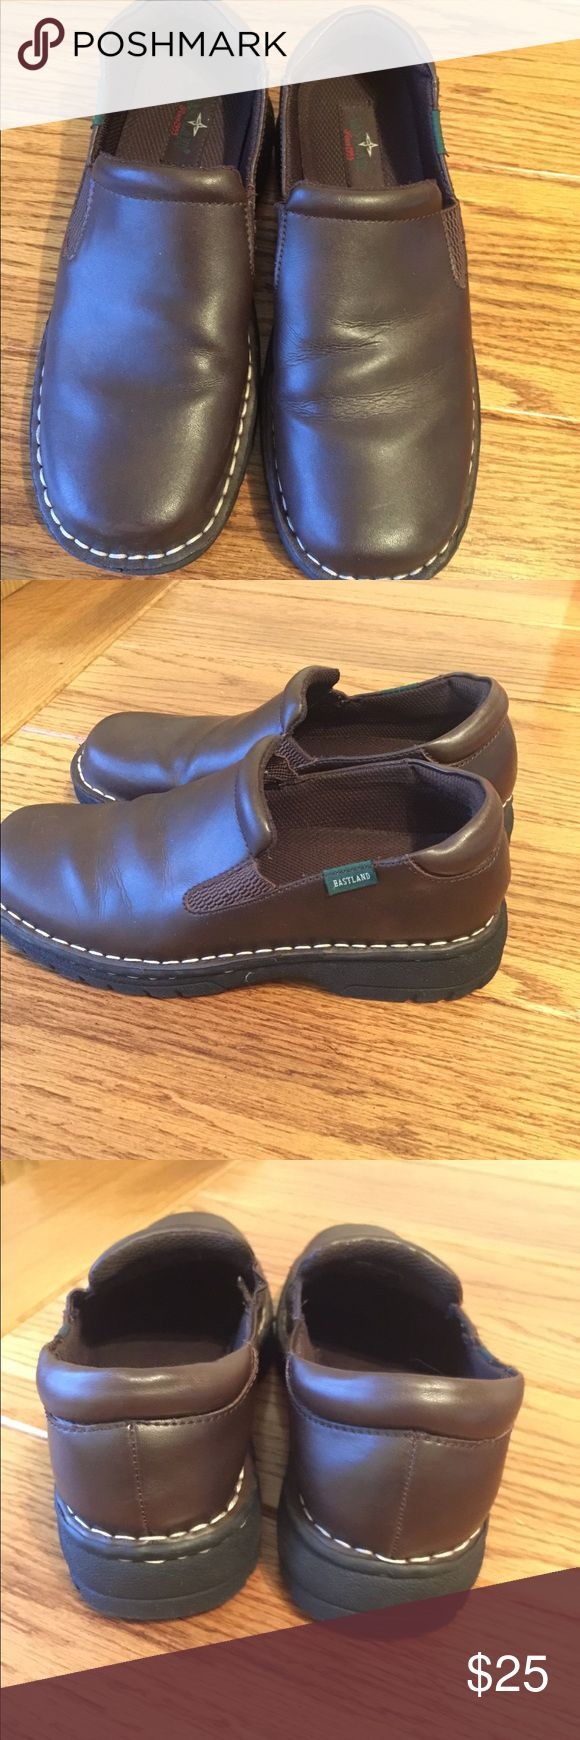 Eastland shoe Youth size 4 1/2 like new leather uppers. Eastland Shoes